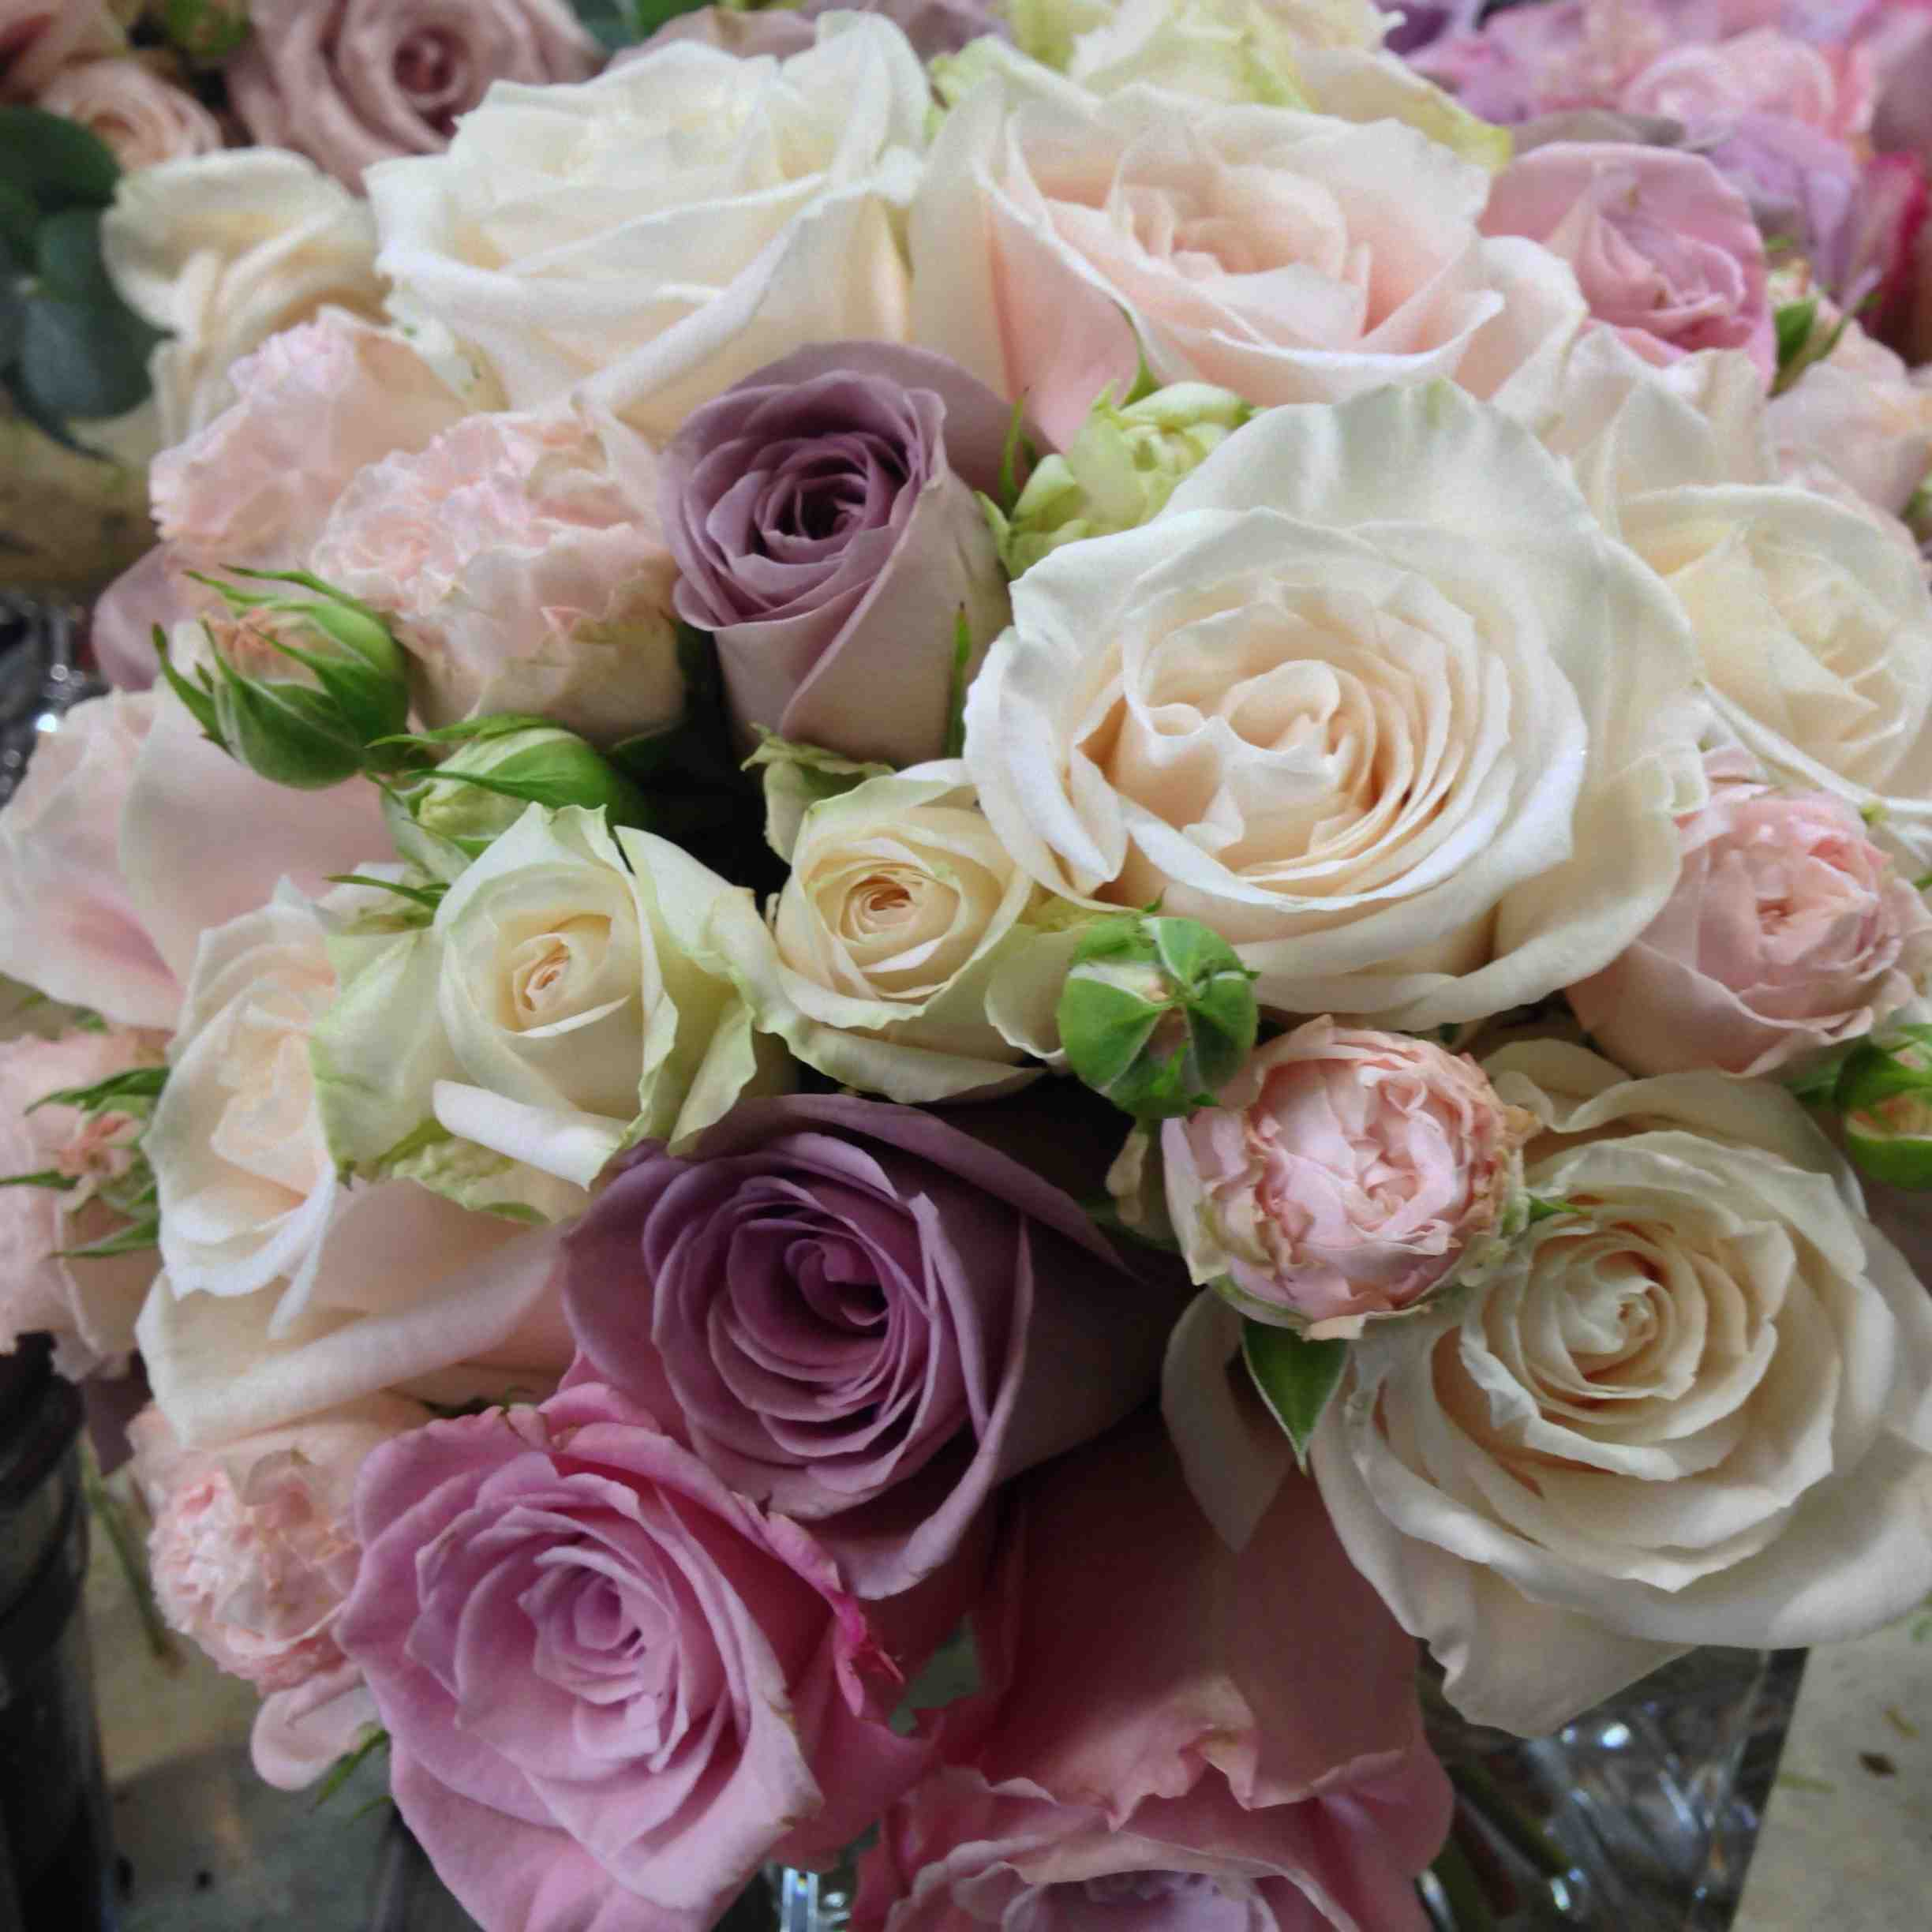 Amanda Austin London Florist Weddings Rose Bouquet